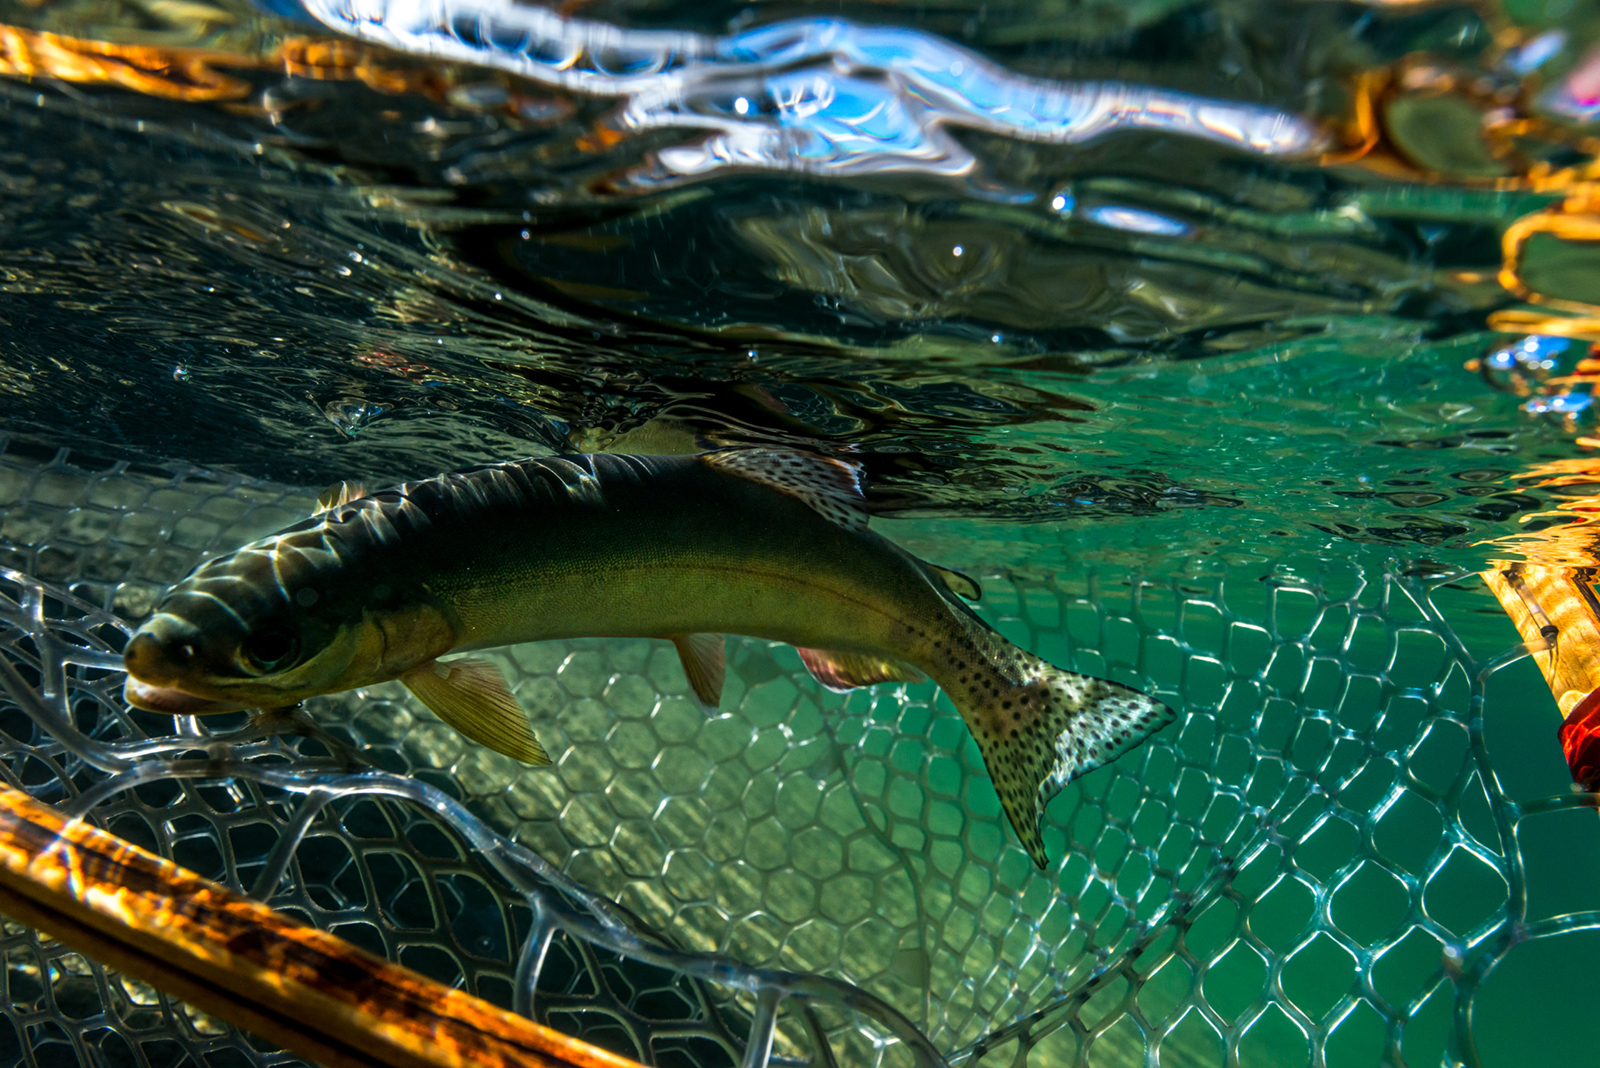 Netting a Golden trout